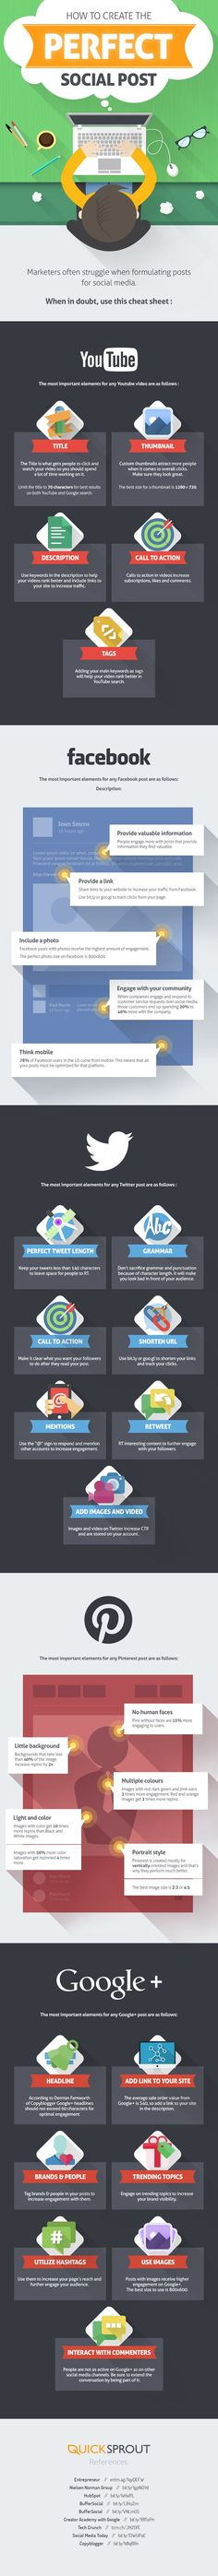 How to create the perfect social media post every time (infographic) - Workopolis | via /borntobesocial/